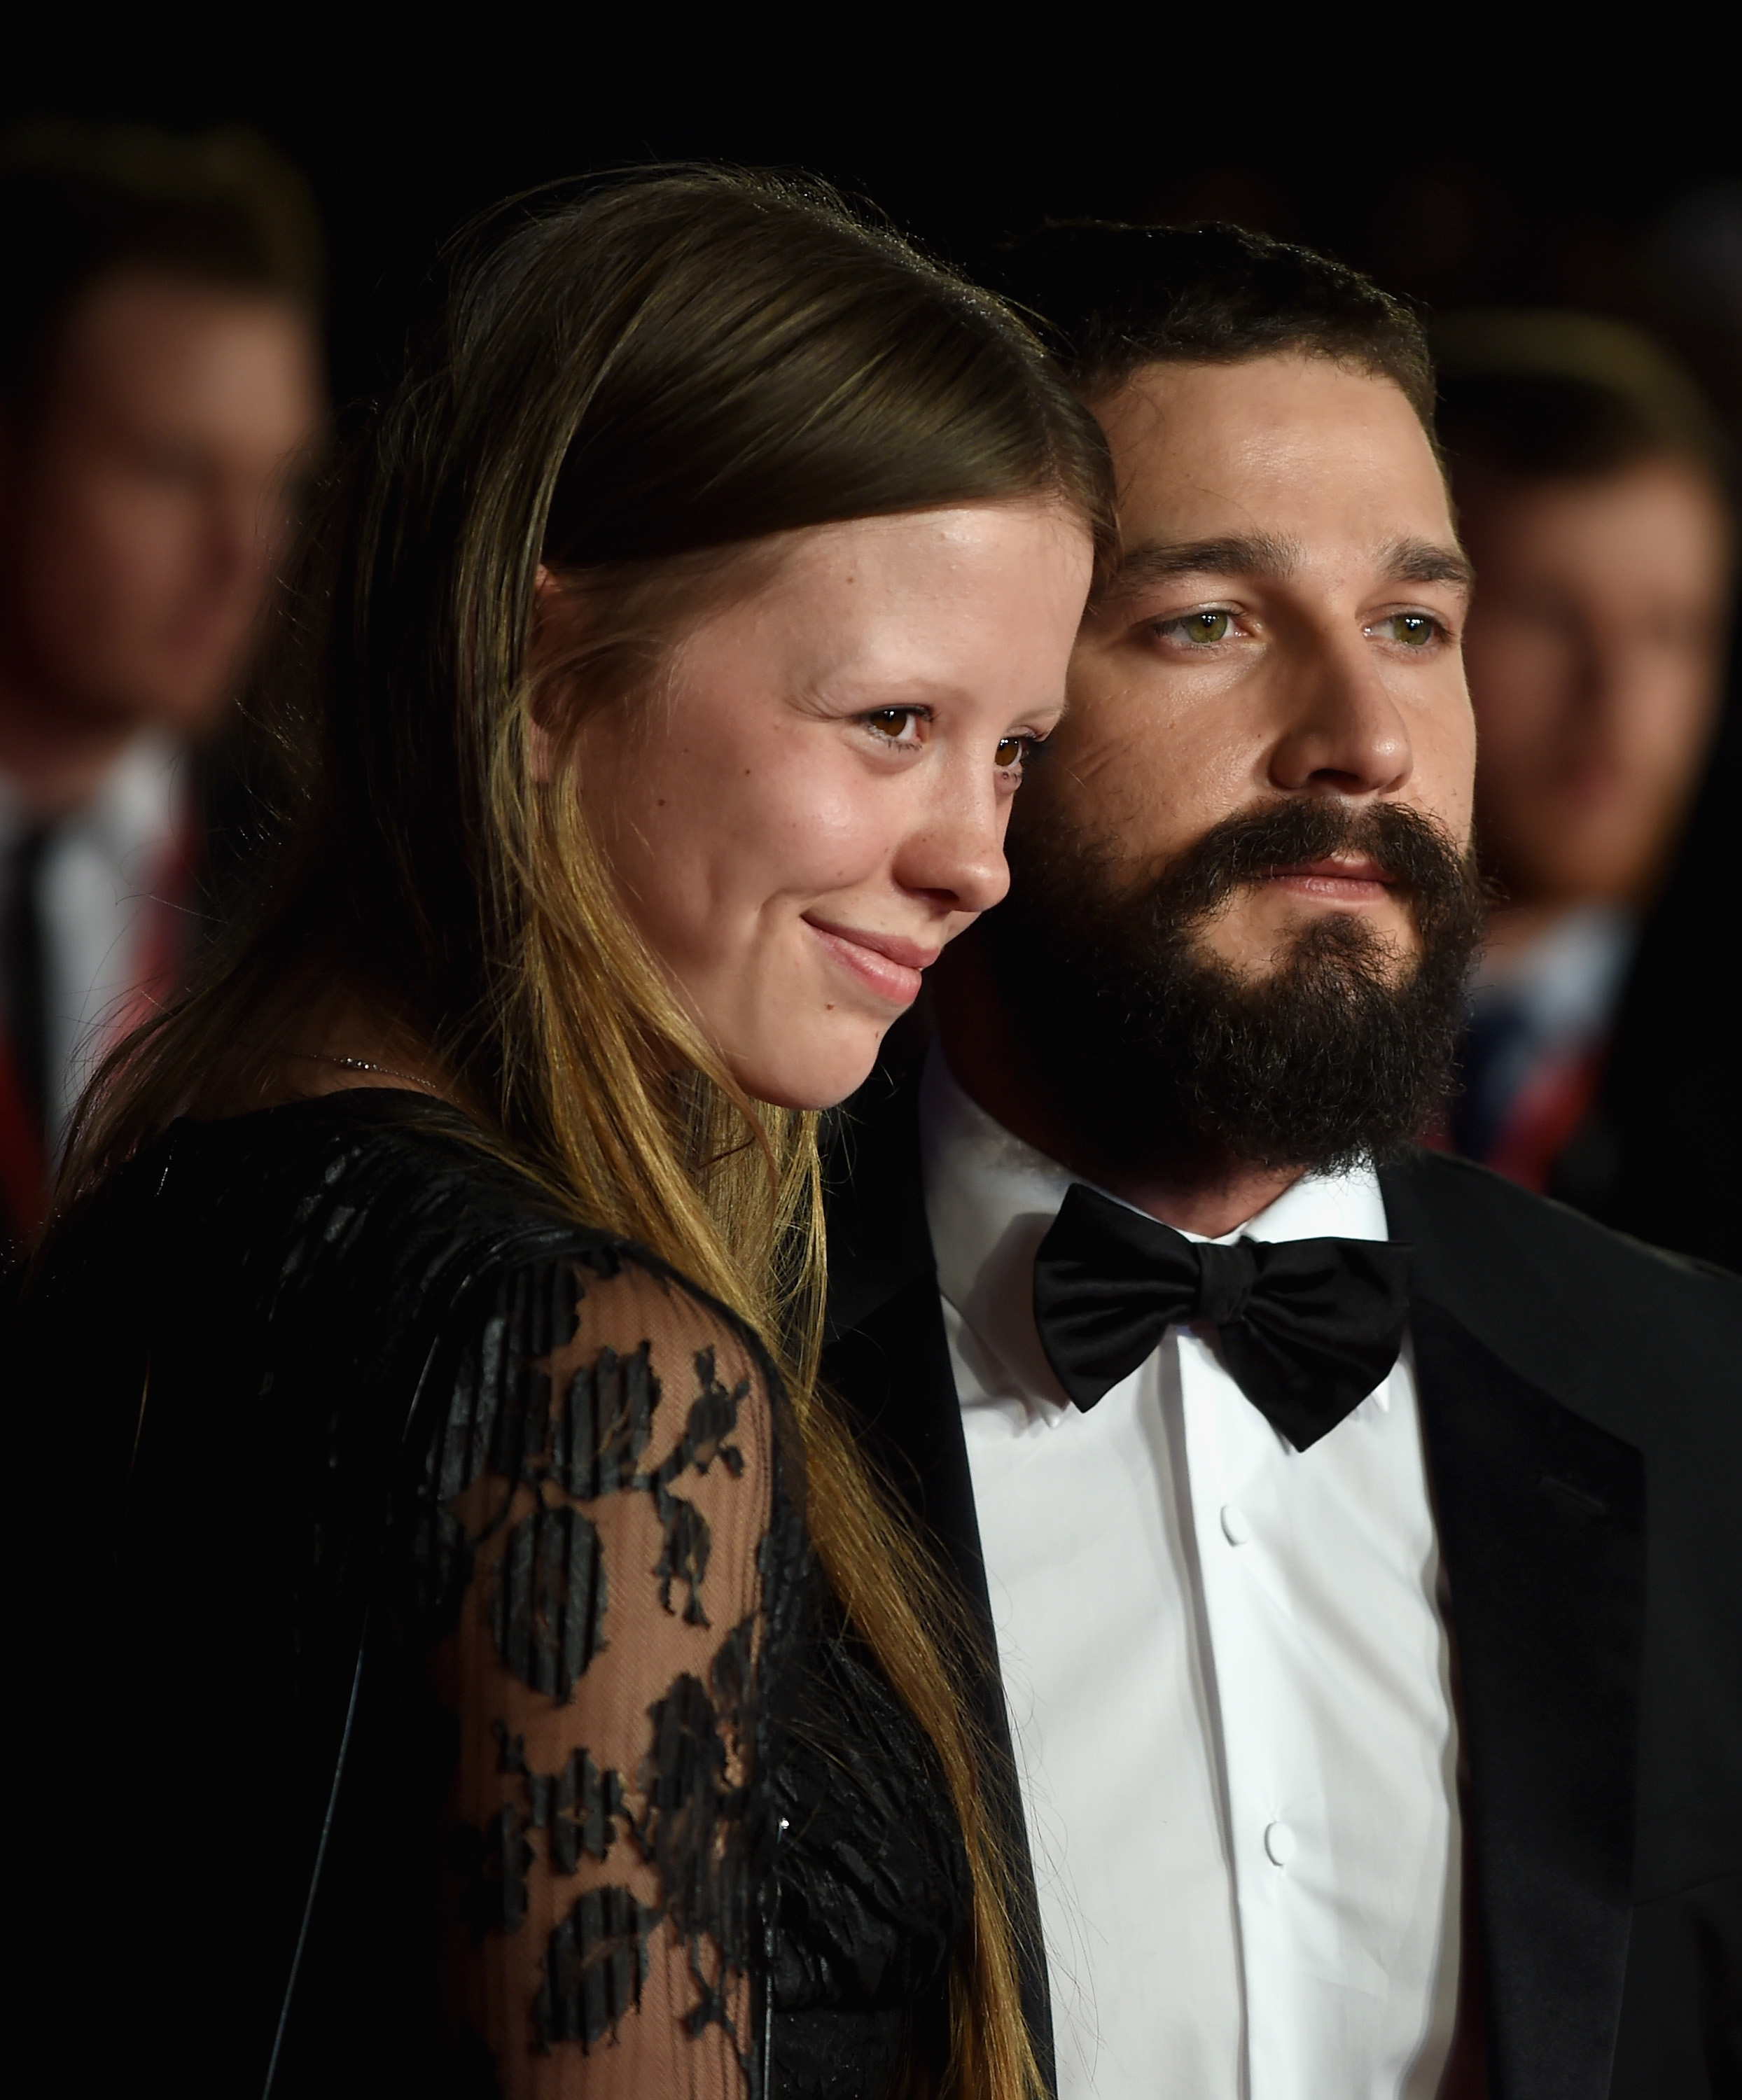 Mia Goth and actor Shia LeBeouf attend the closing night European Premiere gala red carpet arrivals for 'Fury' during the 58th BFI London Film Festival at Odeon Leicester Square on October 19, 2014 in London, England.